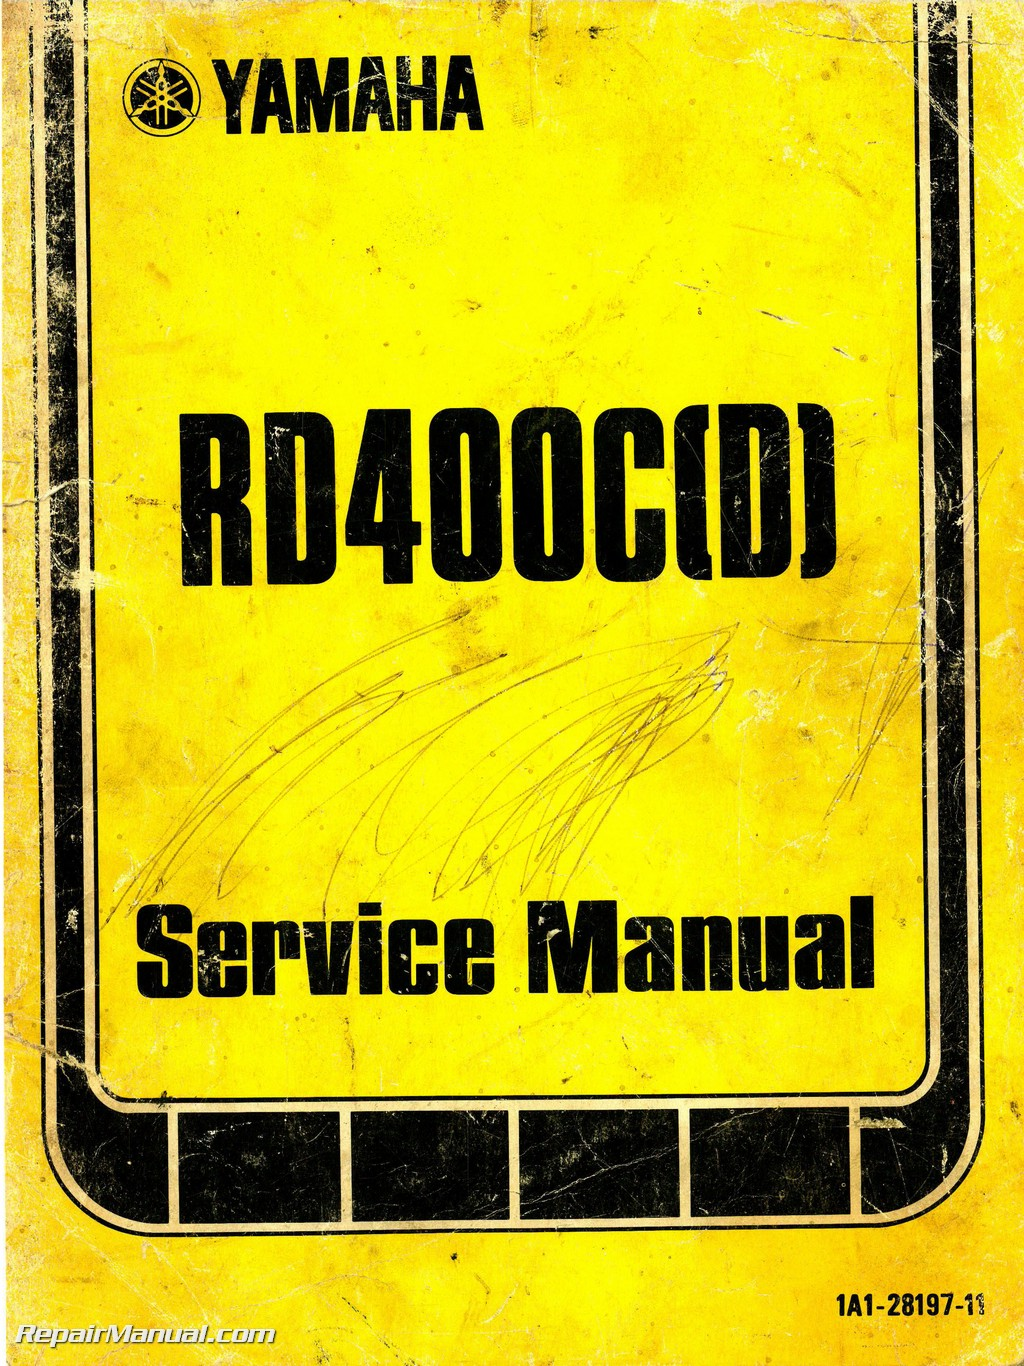 Circuit diagram. Cable routing diagram. 1976-1977-Yamaha-RD400C-RD400D-Service-Manual_Page_1.jpg ...